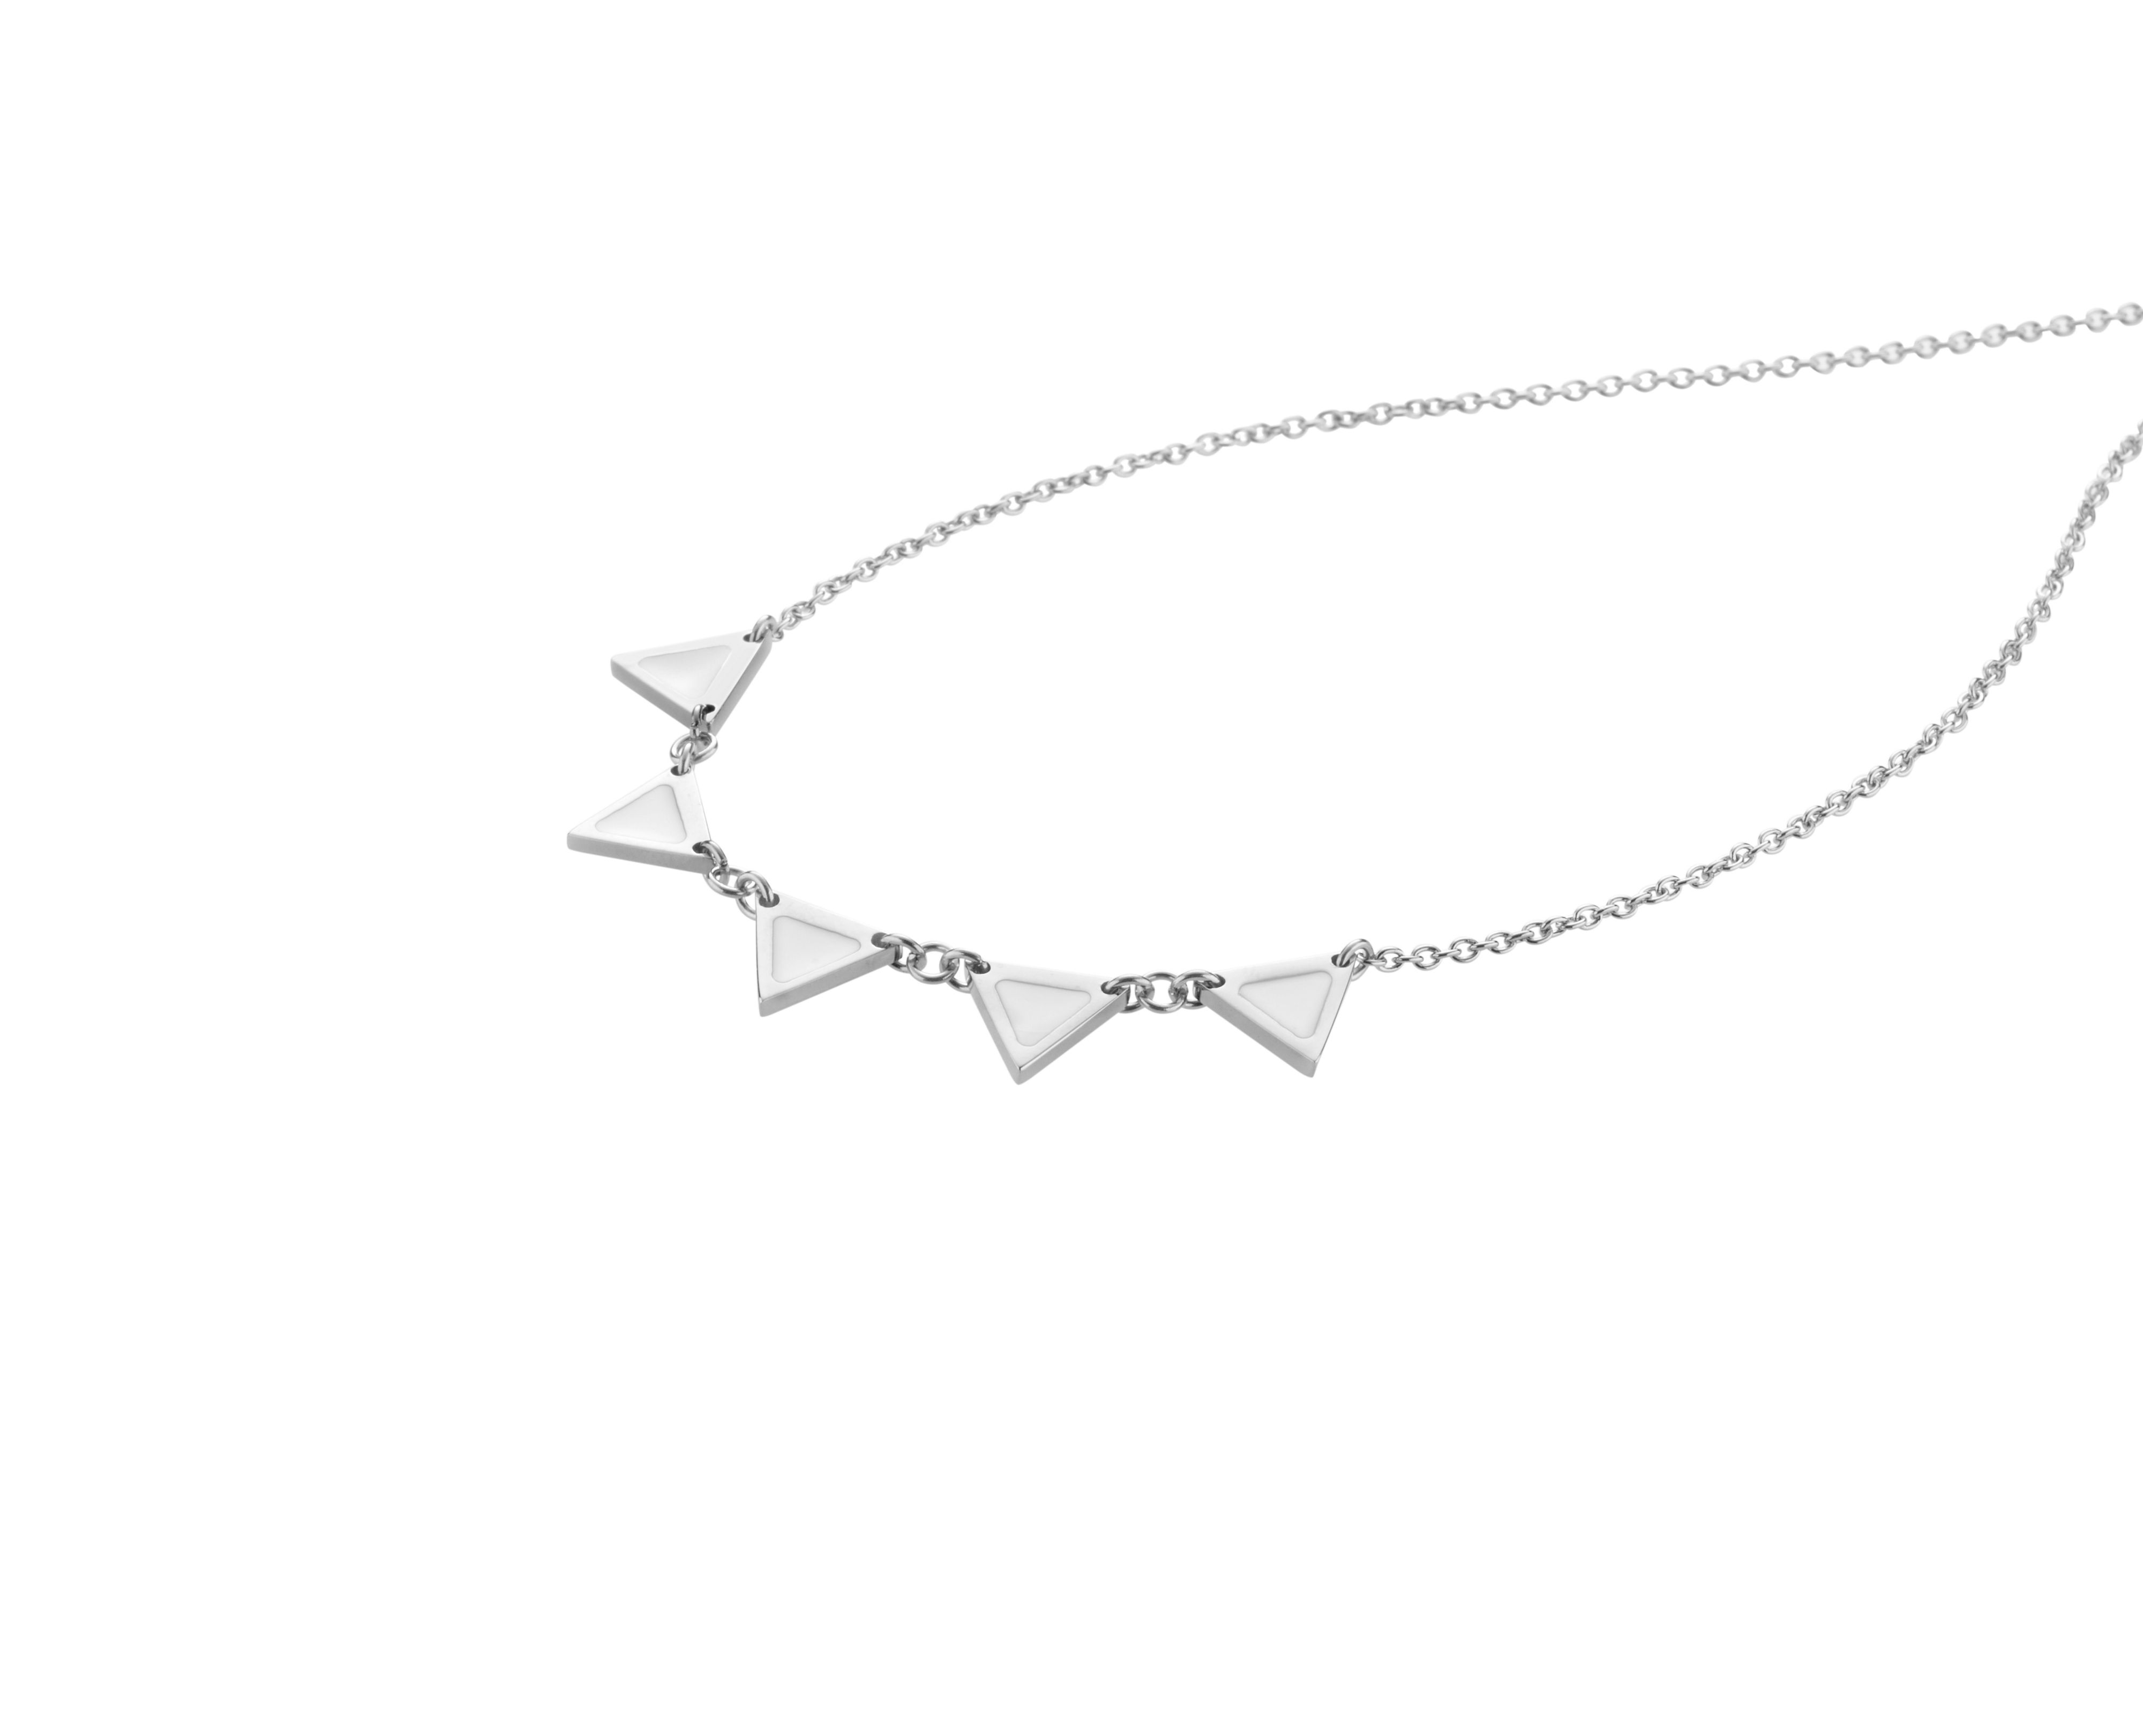 Enamelli necklace silver